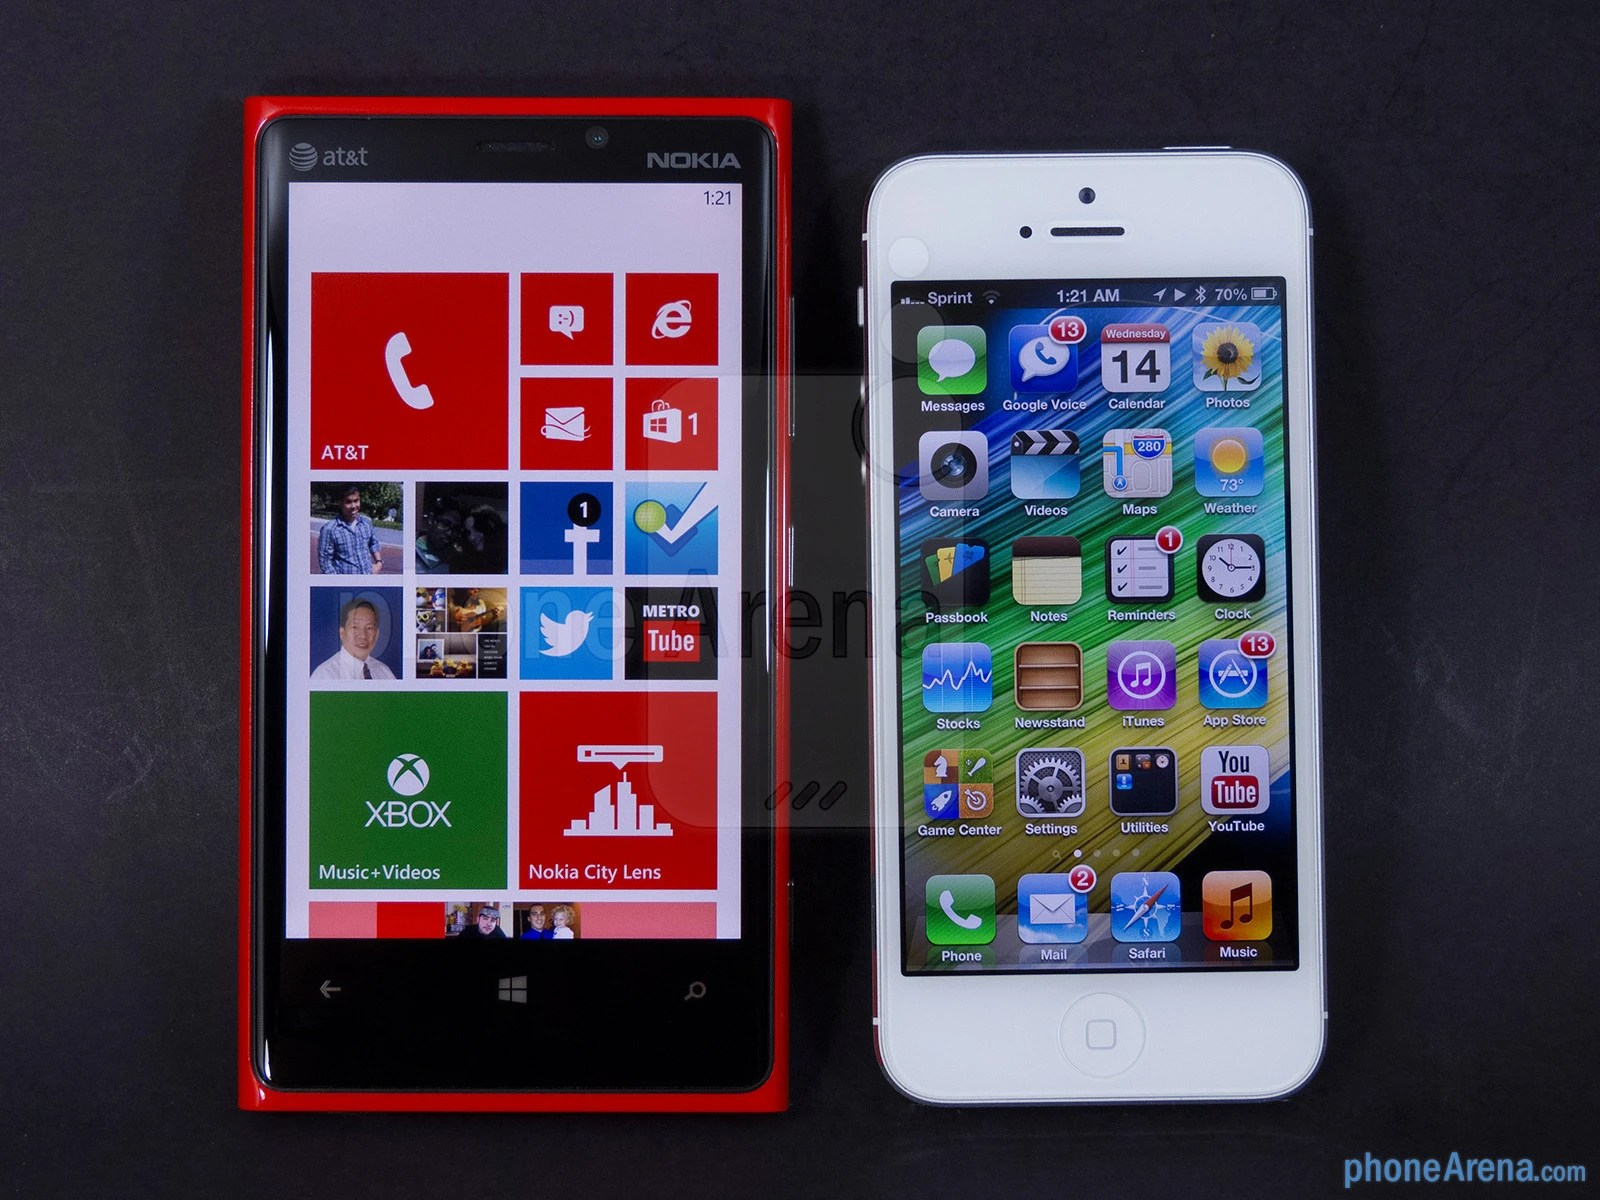 Nokia Lumia 920 Vs Iphone 5 Nokia Lumia 920 vs Apple iPhone 5 Call quality Battery and 1600x1200